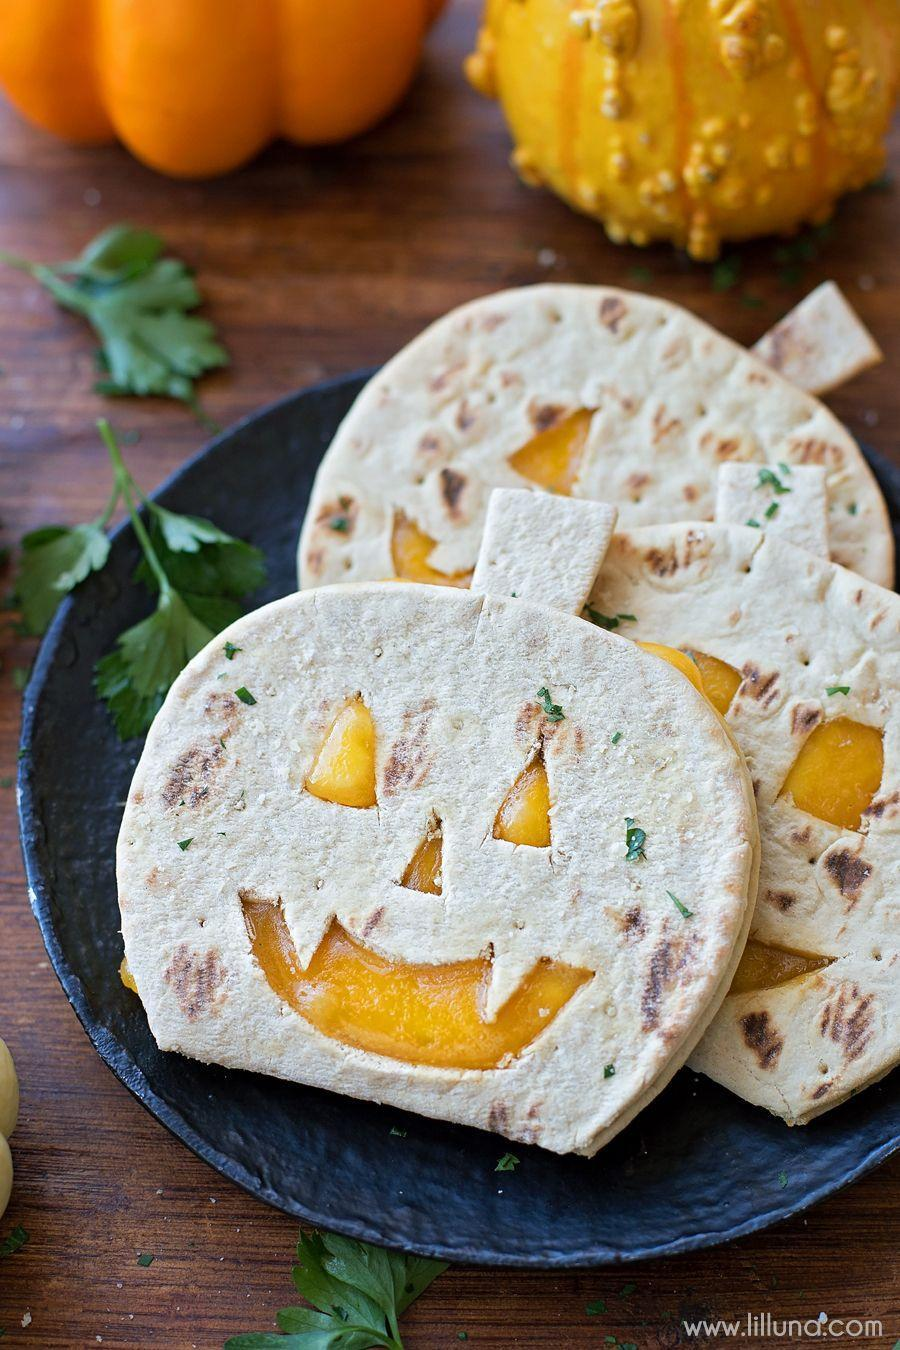 "<p>Ask your kids to join you in the kitchen to make <a href=""https://www.countryliving.com/food-drinks/g3498/halloween-appetizers/"" rel=""nofollow noopener"" target=""_blank"" data-ylk=""slk:easy Halloween appetizers"" class=""link rapid-noclick-resp"">easy Halloween appetizers</a>, like these adorable (and yummy!) pumpkin-shaped quesadillas. </p><p><strong>Get the recipe at <a href=""https://lilluna.com/flatbread-halloween-recipes/"" rel=""nofollow noopener"" target=""_blank"" data-ylk=""slk:Lil' Luna"" class=""link rapid-noclick-resp"">Lil' Luna</a></strong><strong>.</strong></p><p><a class=""link rapid-noclick-resp"" href=""https://www.amazon.com/Rachael-Ray-Nonstick-Bakeware-Silicone/dp/B00FGVPAL2/?tag=syn-yahoo-20&ascsubtag=%5Bartid%7C2139.g.34440360%5Bsrc%7Cyahoo-us"" rel=""nofollow noopener"" target=""_blank"" data-ylk=""slk:SHOP BAKING SHEETS"">SHOP BAKING SHEETS</a><br></p>"